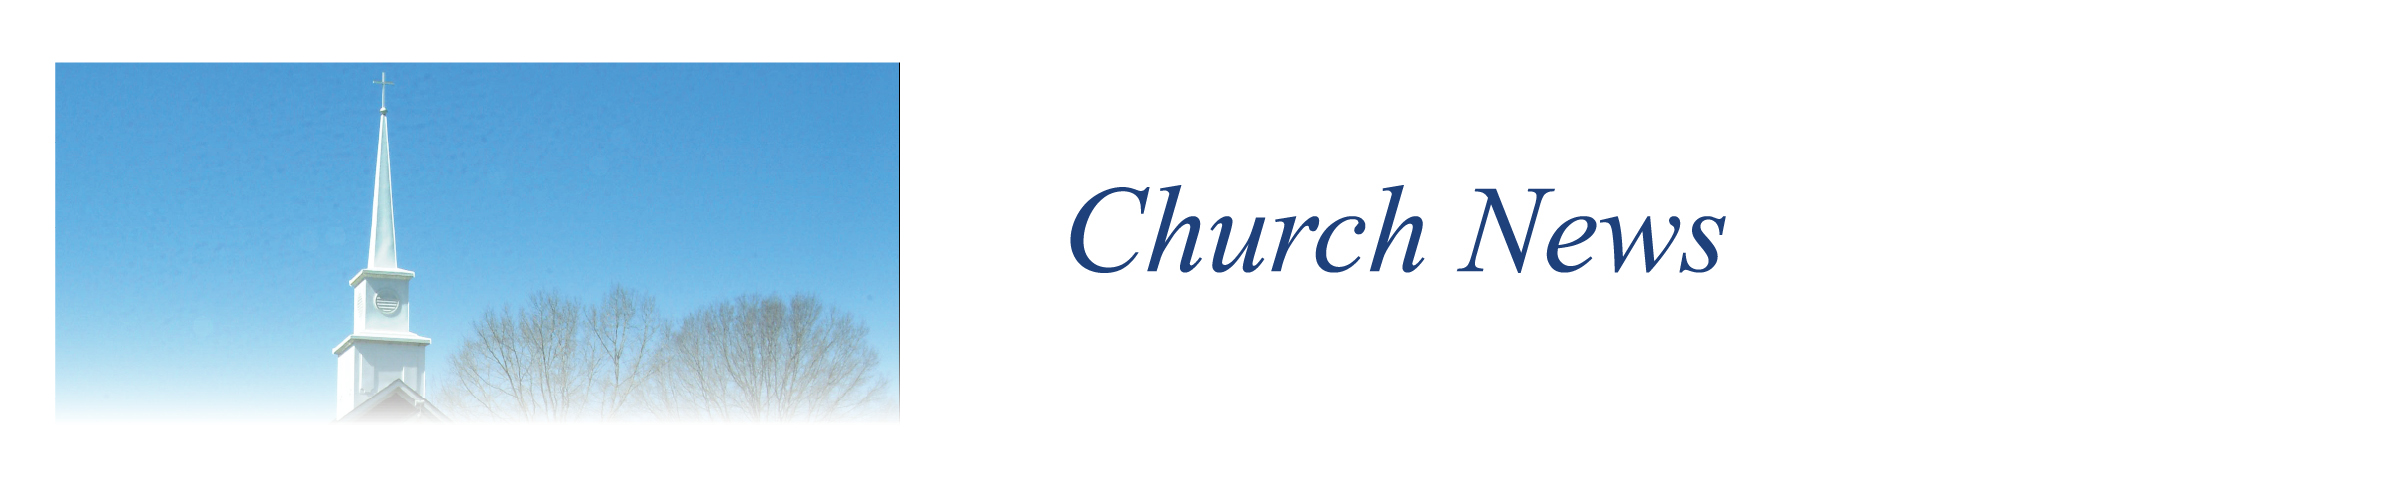 c-church news